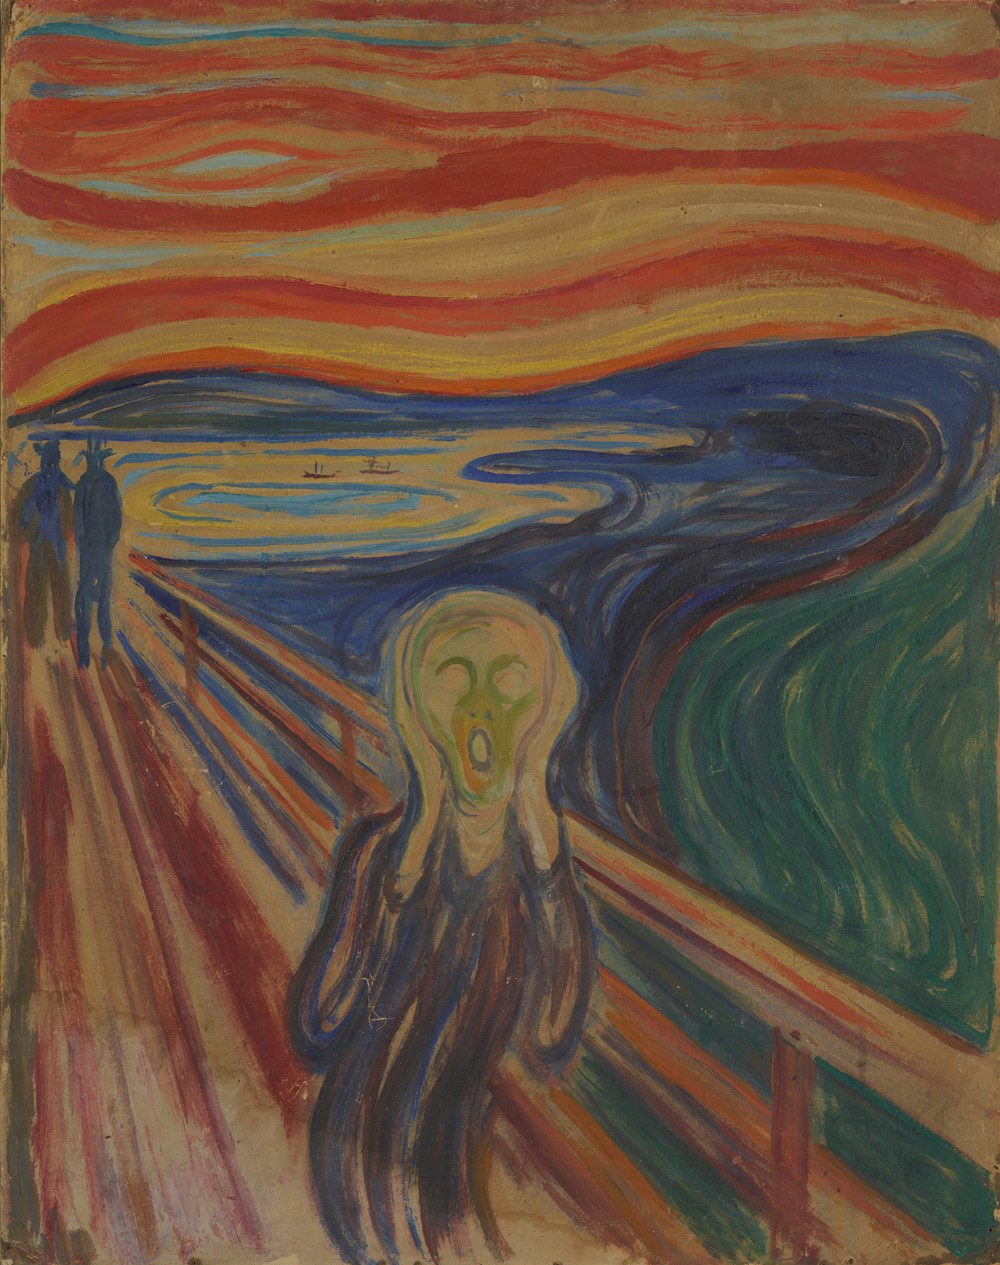 Edvard Munch: The Scream. Tempera and oil on unprimed cardboard, 1910? Photo: Munchmuseet.